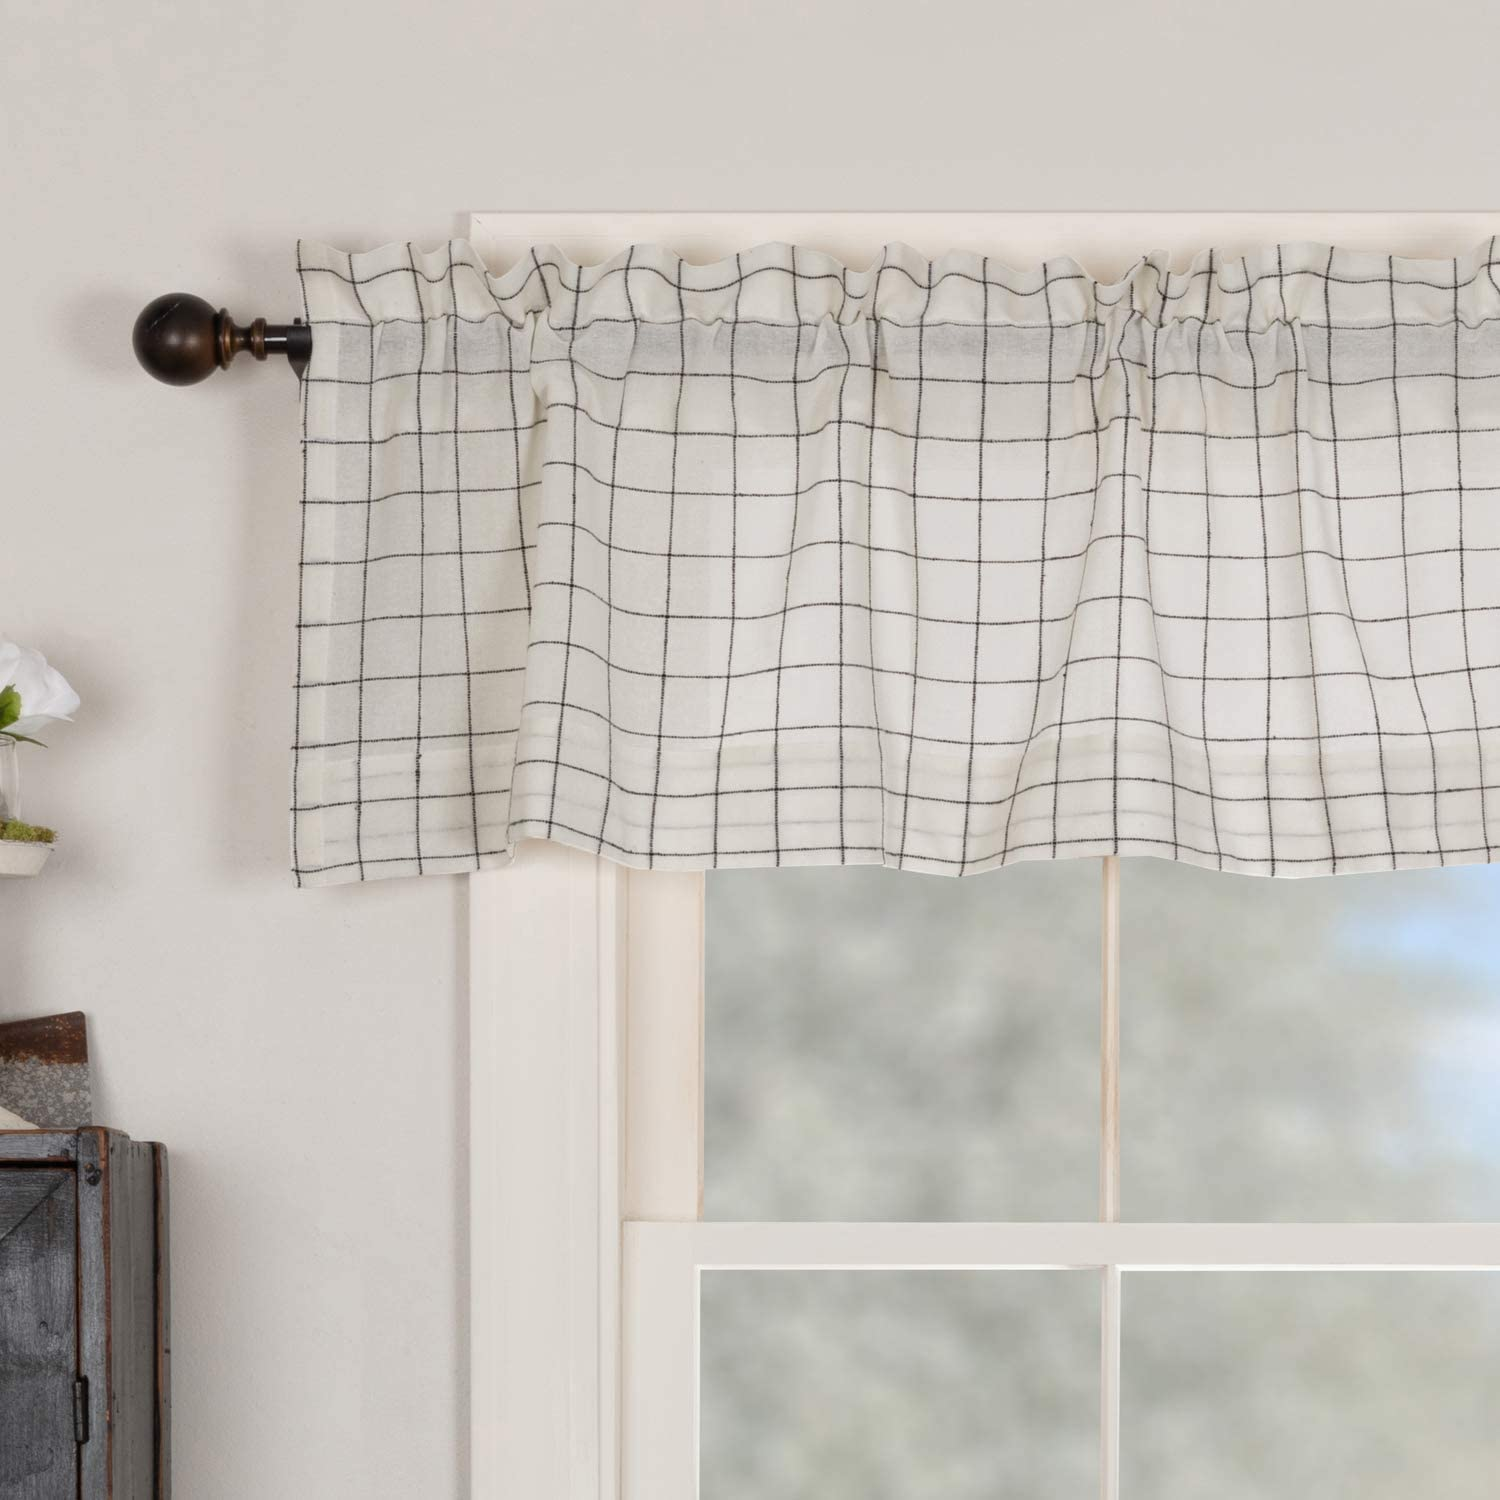 Springhouse Cheap mail order sales Semi Sheer Valance Curtain 7 Antique Black White Clearance SALE Limited time